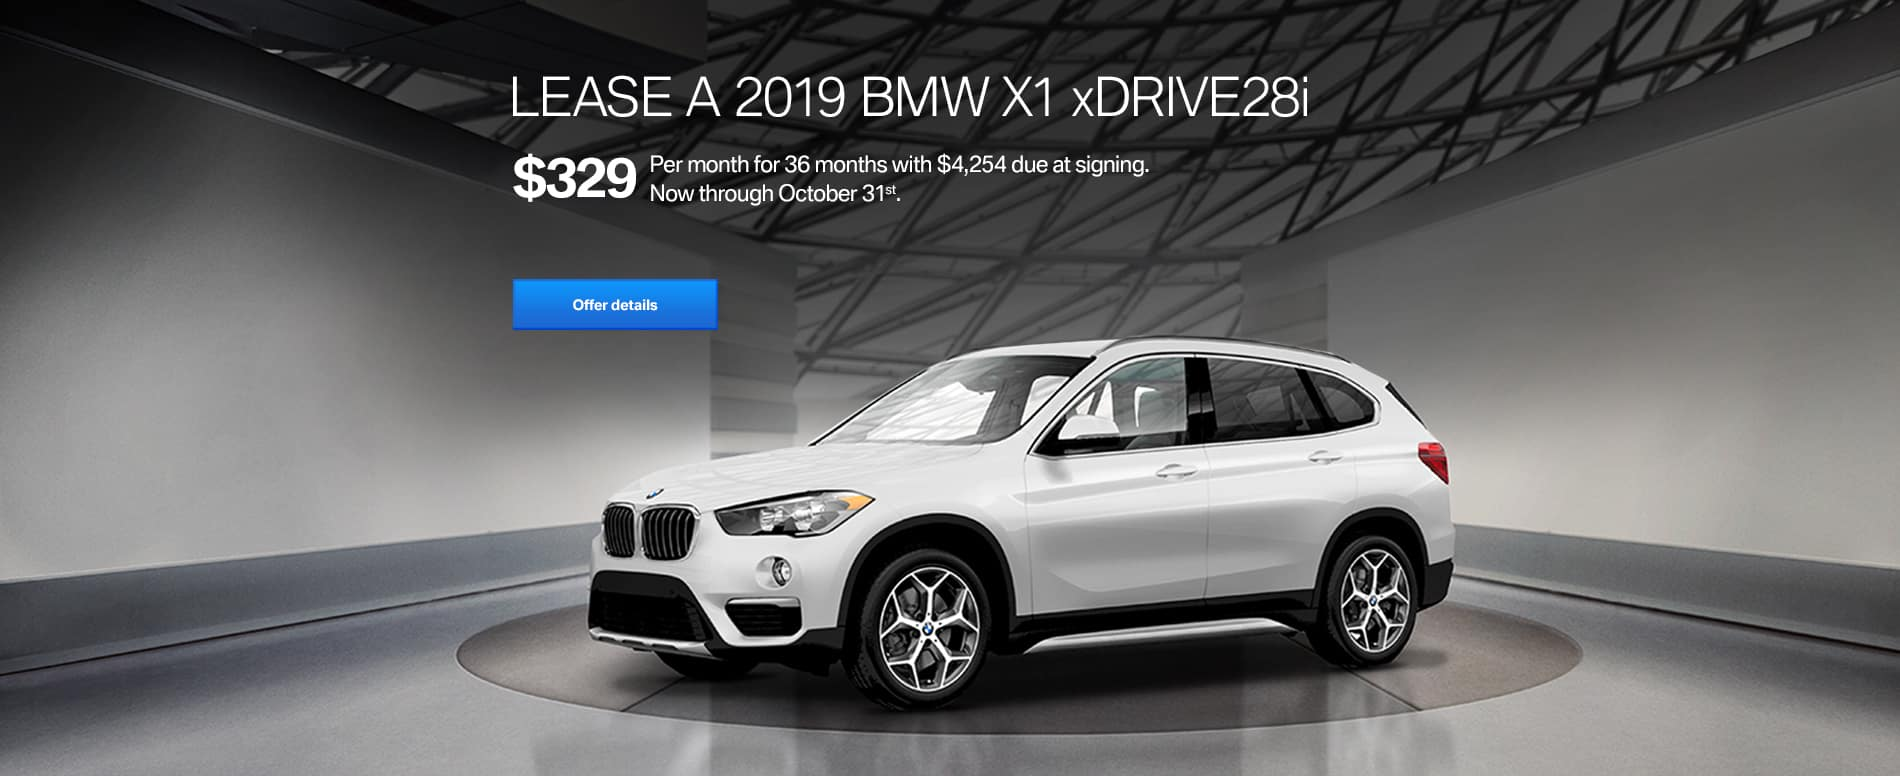 FMA3_OCT_PUSH_BMW_X1_xDrive28i_329